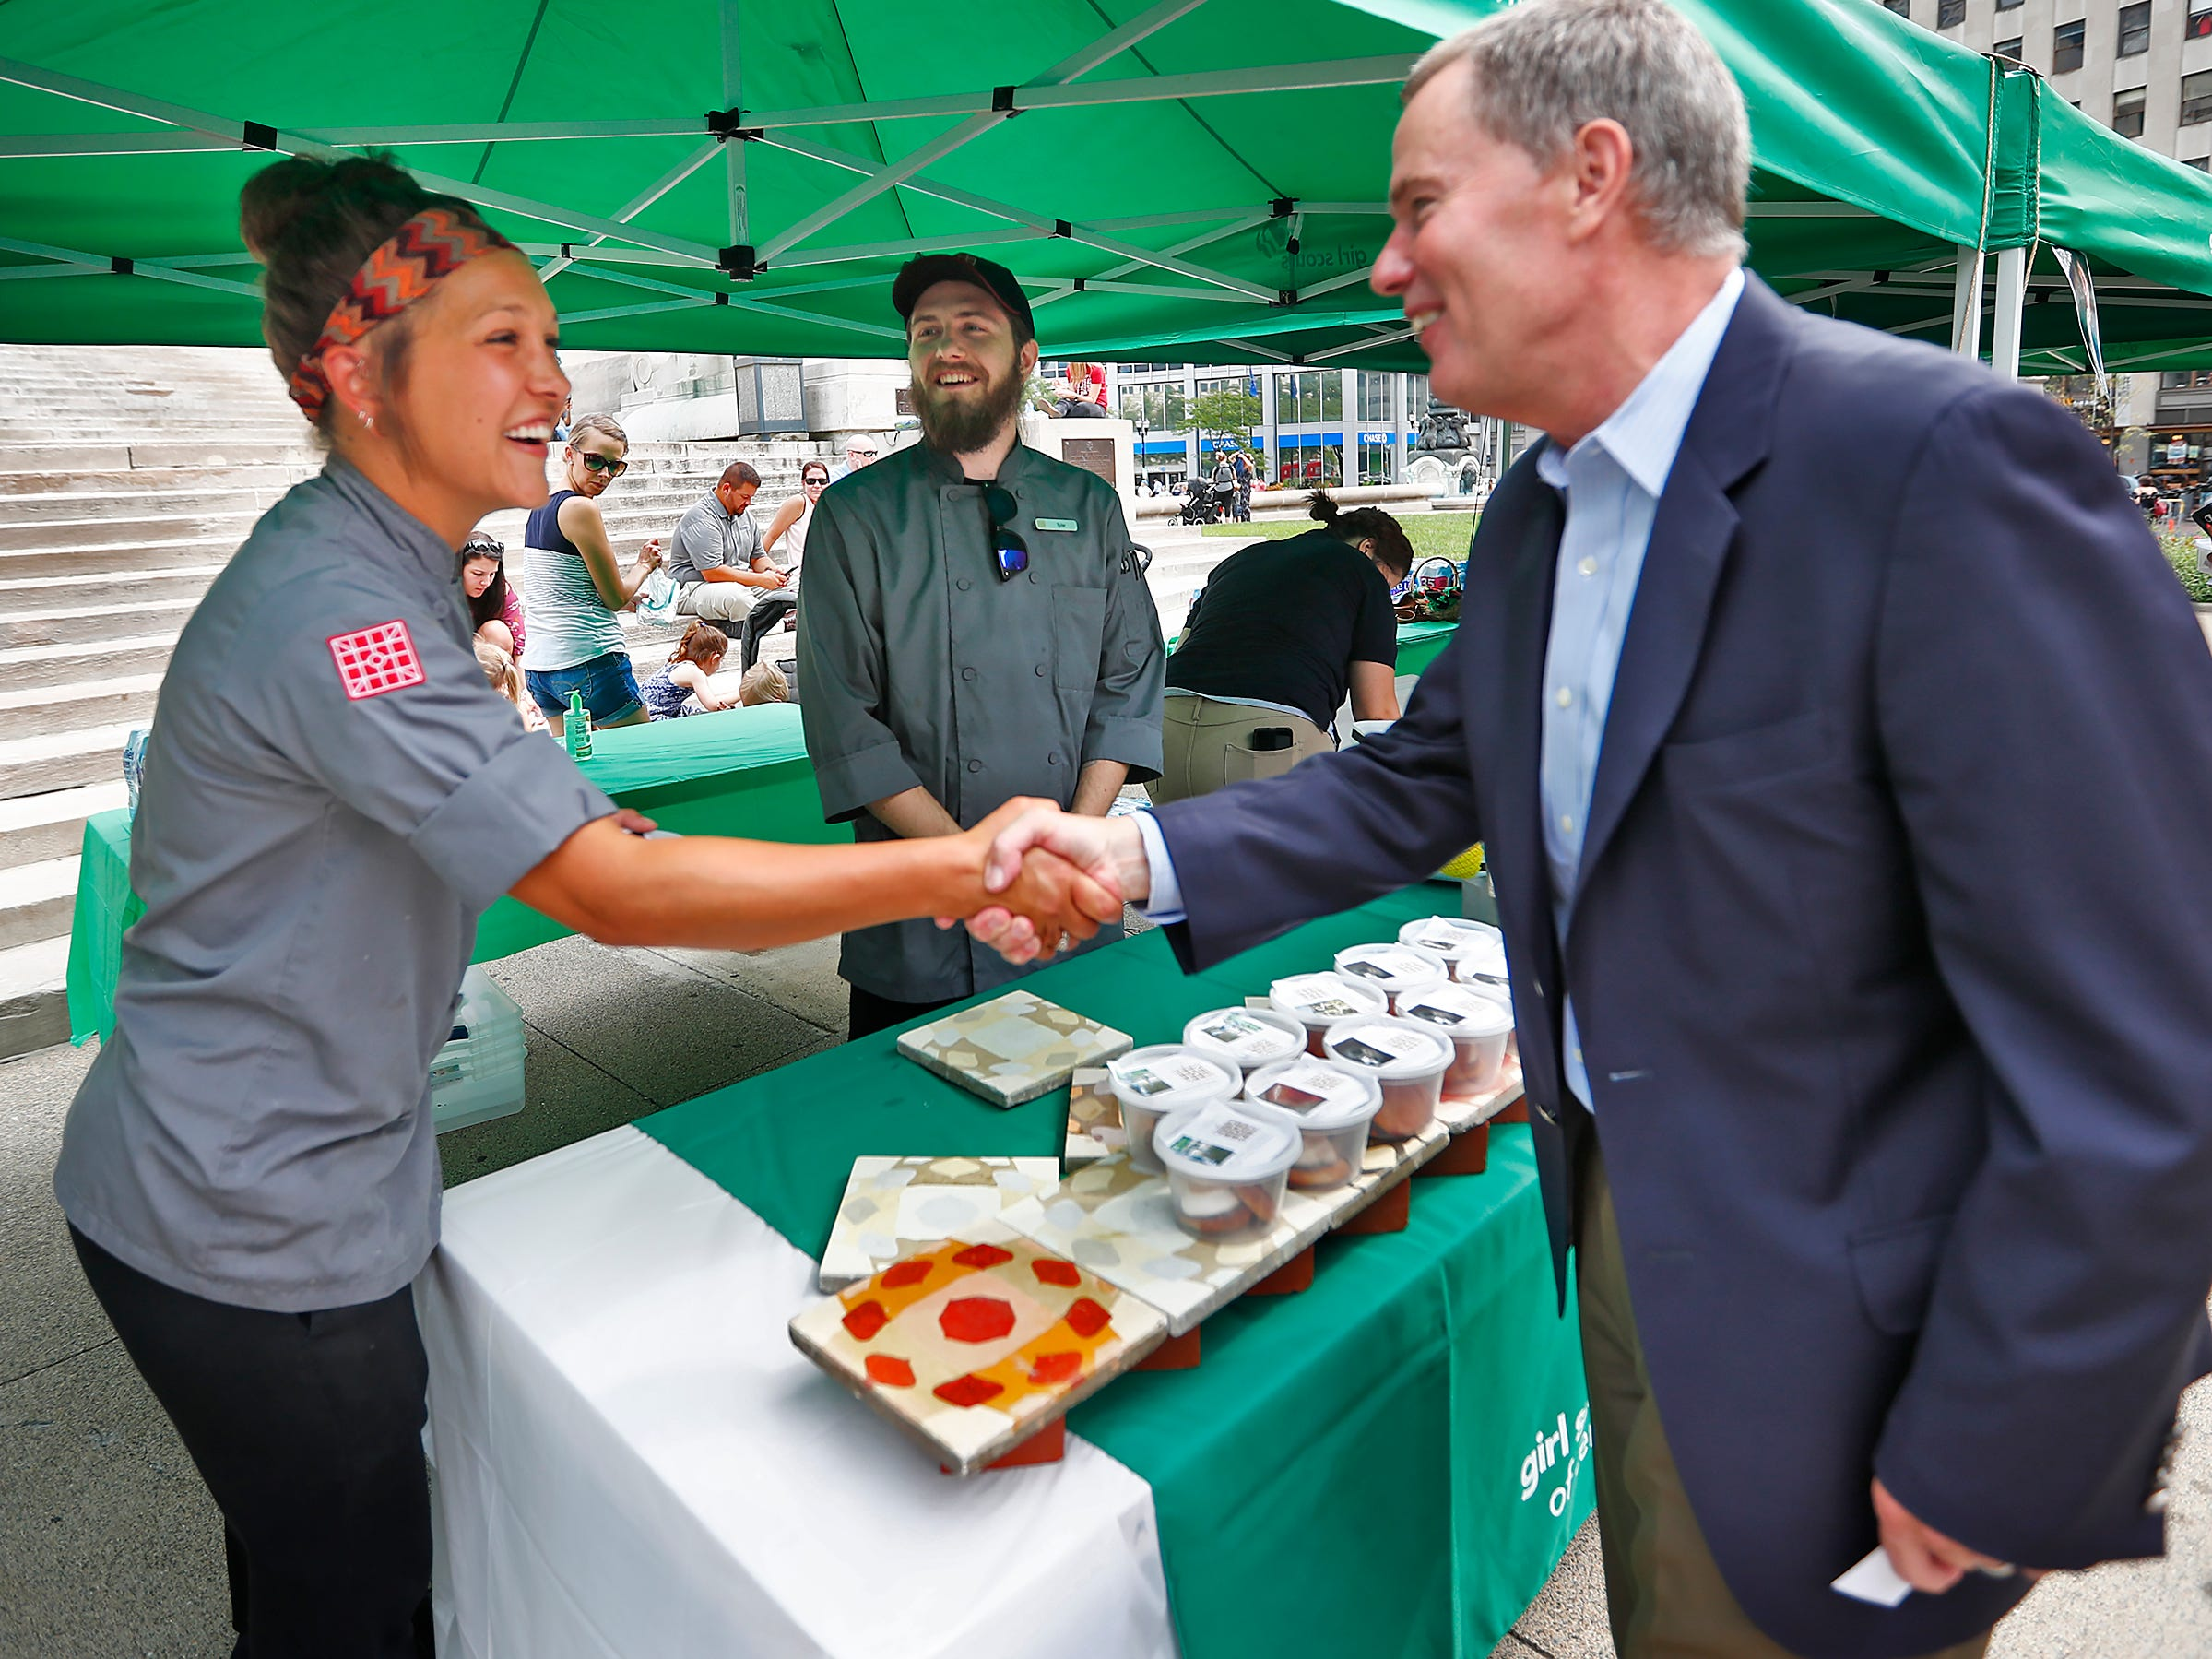 Chef Erica Oakley, from The Alexander, meets Mayor Joe Hogsett, during the Girl Scouts' S'mores on the Circle event, Friday, Aug. 10, 2018.  The event celebrated National S'mores Day.  Seven local chefs, including Oakley, were featured, creating gourmet s'mores treats, sold as a fundraiser.  Proceeds go for financial assistance for Girl Scouts, helping all girls who want to be a girl scout participating in hands-on adventures and STEM activities.